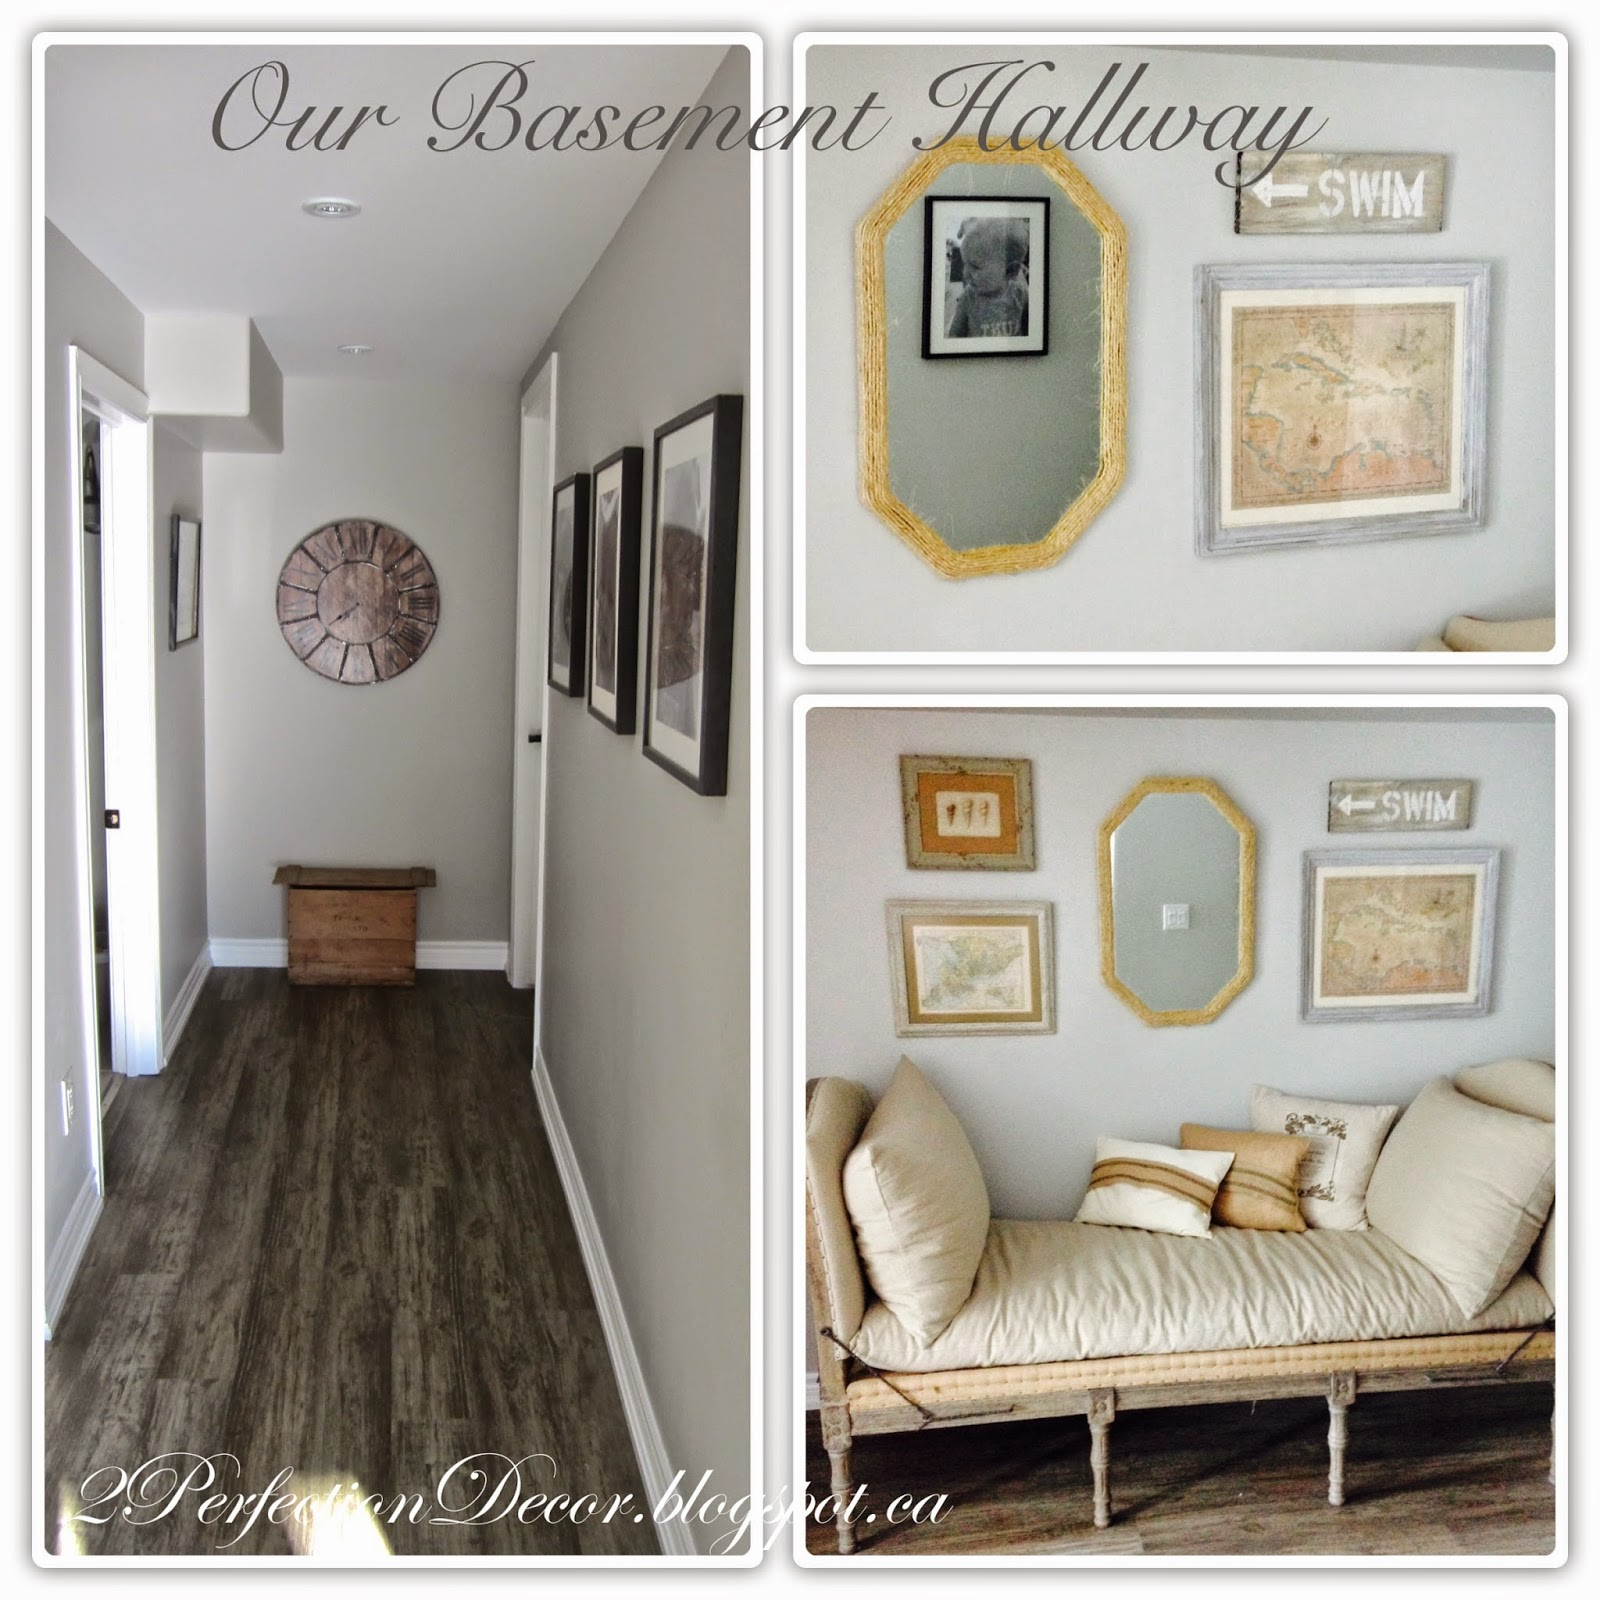 2Perfection Decor: Featured